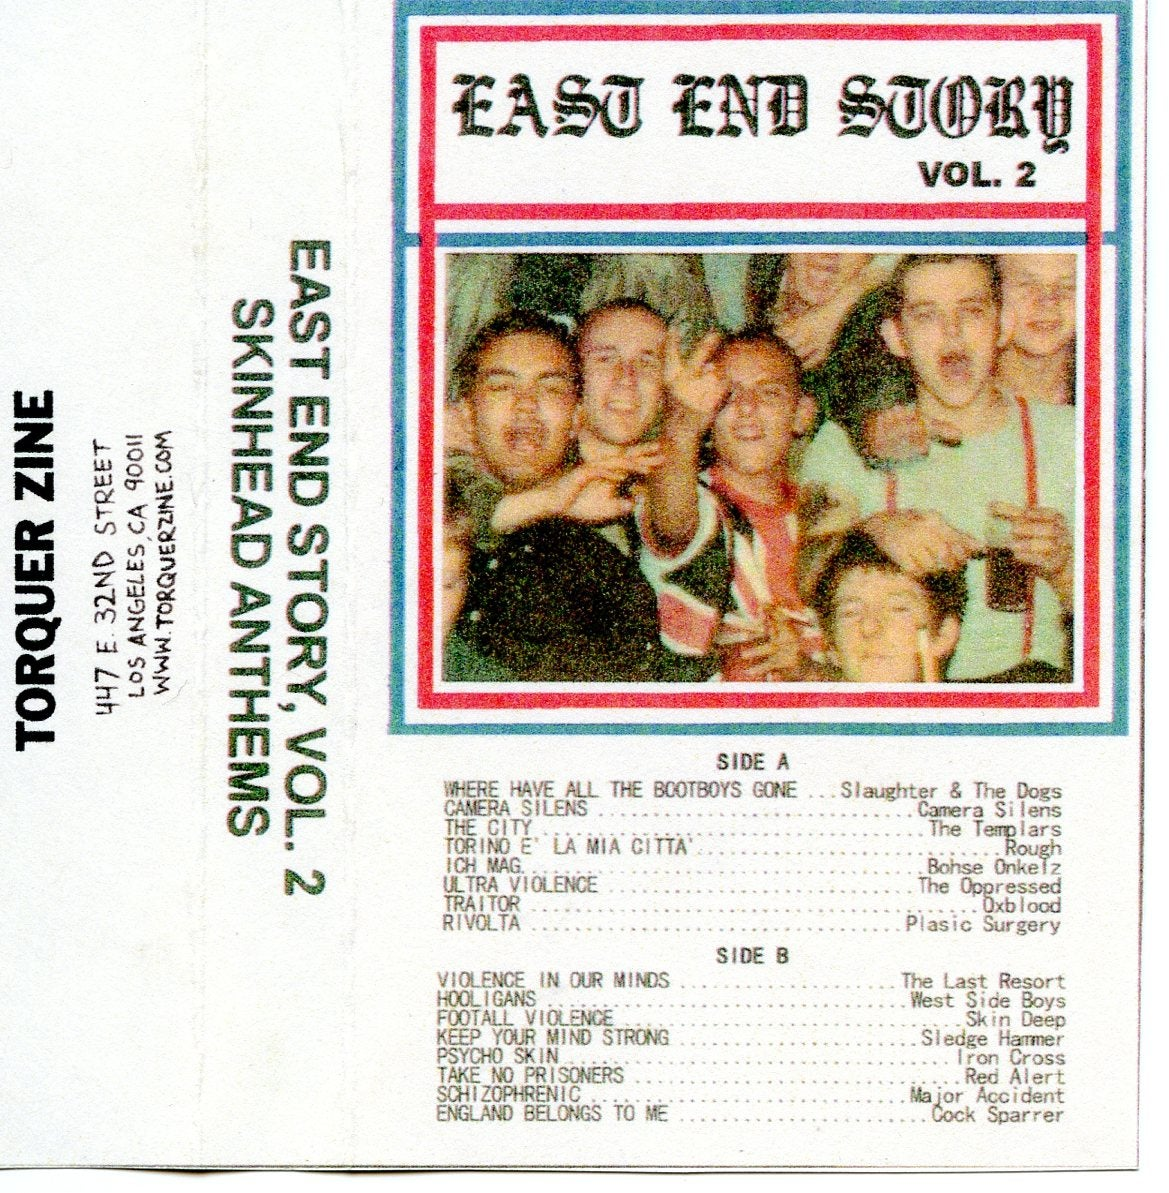 Image of EAST END STORY VOL. 2